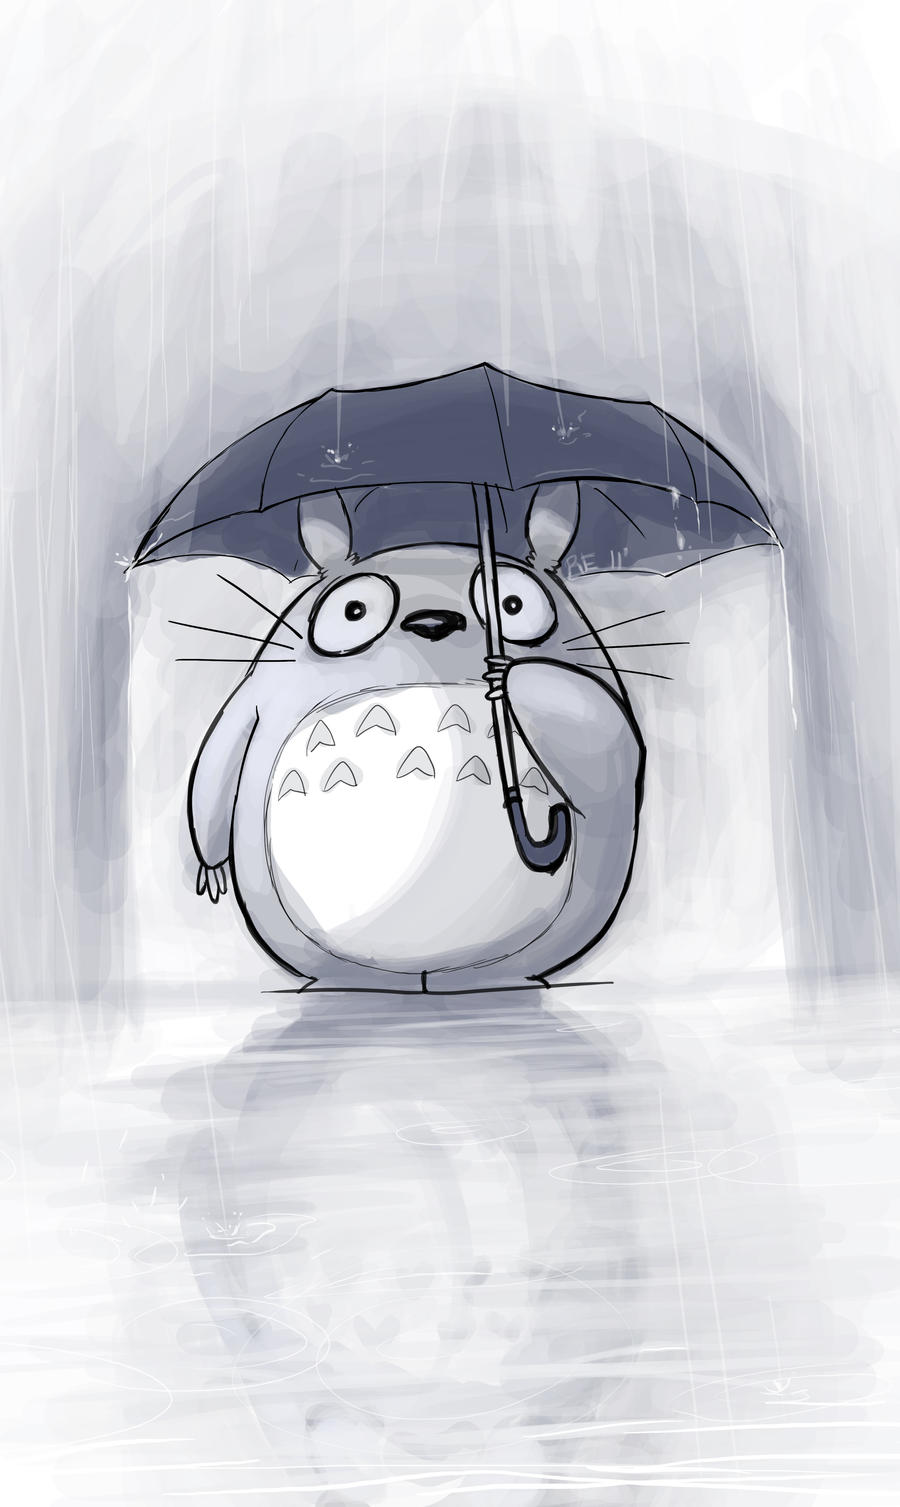 Totoro - Rainy Days by RErrede on deviantART